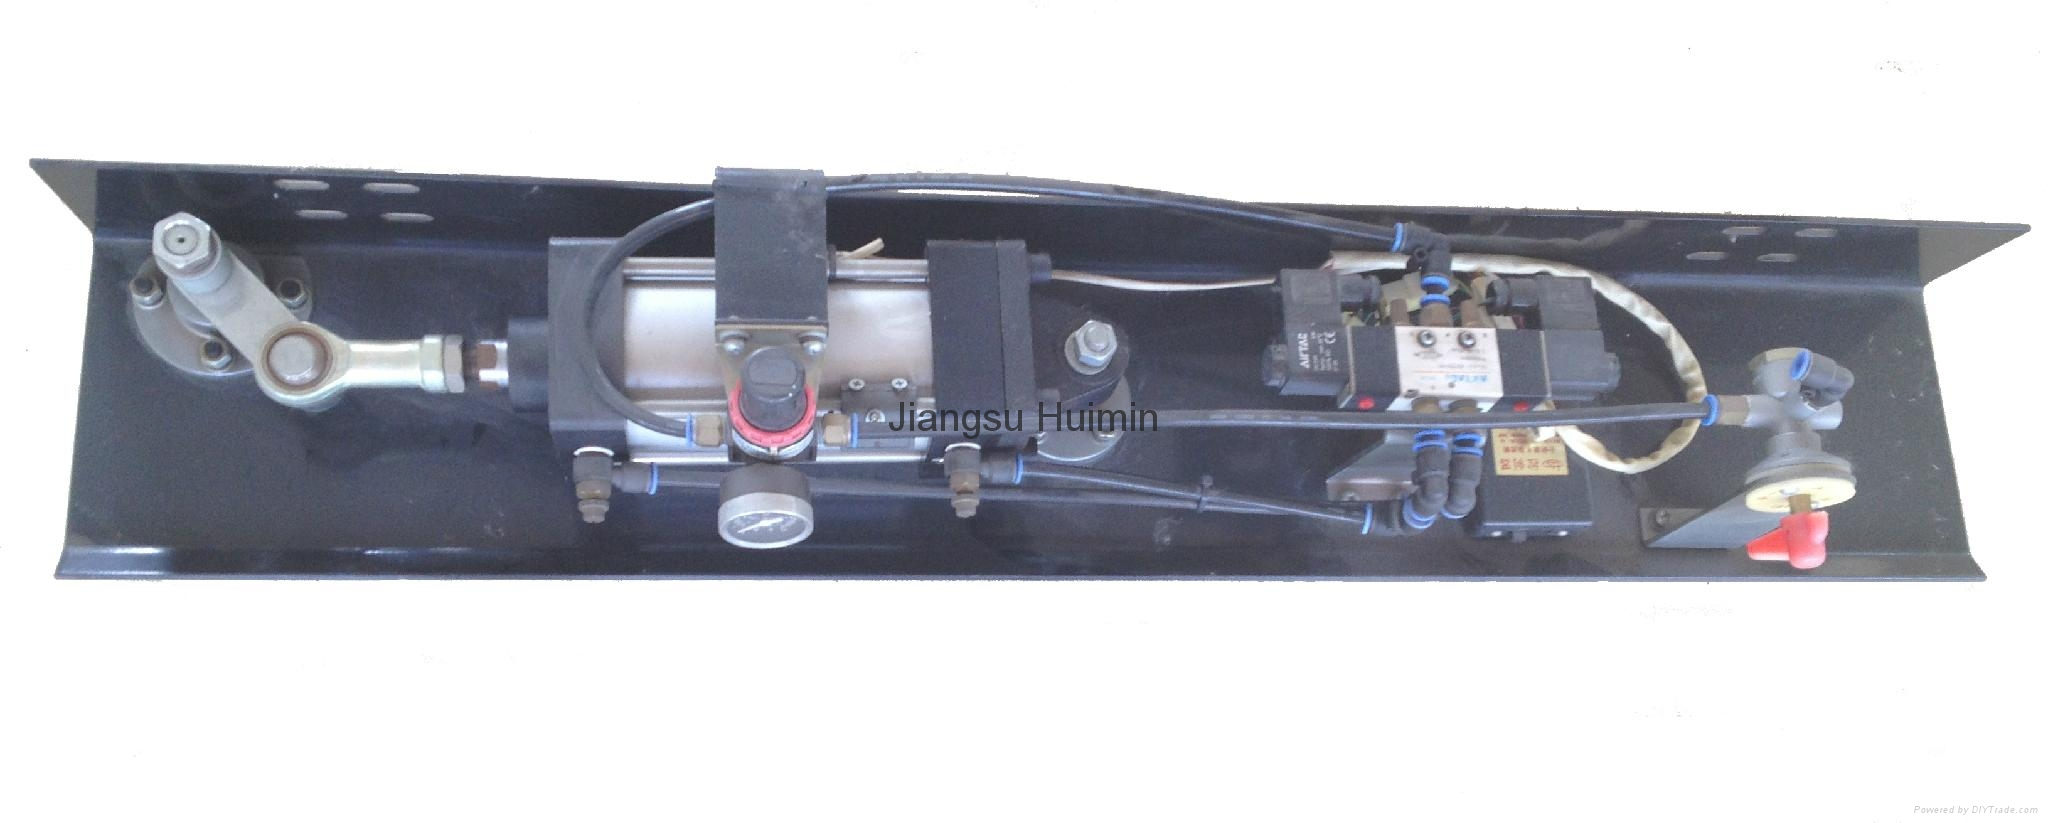 Pneumatic Bus Doors \\\\u0026 Pneumatic Swing In Bus Door Actuator/mechanism 5 .